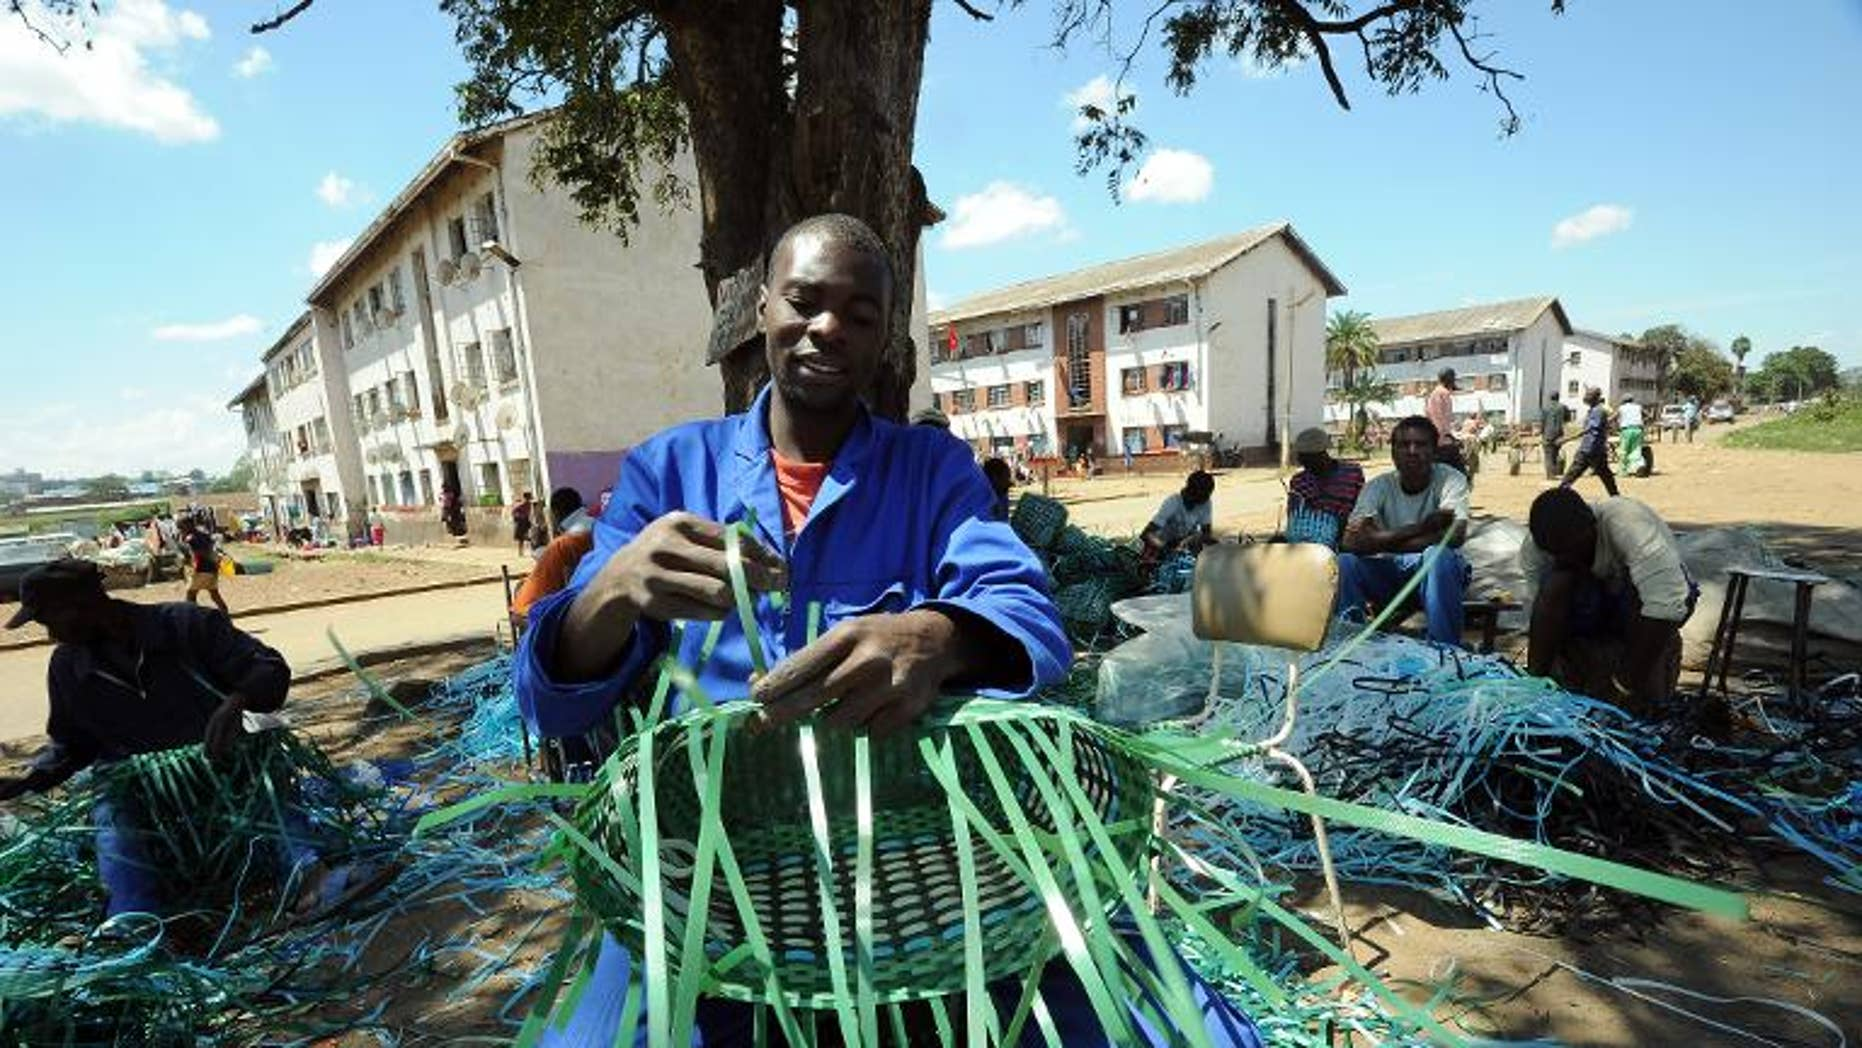 A man makes a basket with packaging strips in the Mbare suburb of Zimbabwe's capital Harare, on March 17, 2013